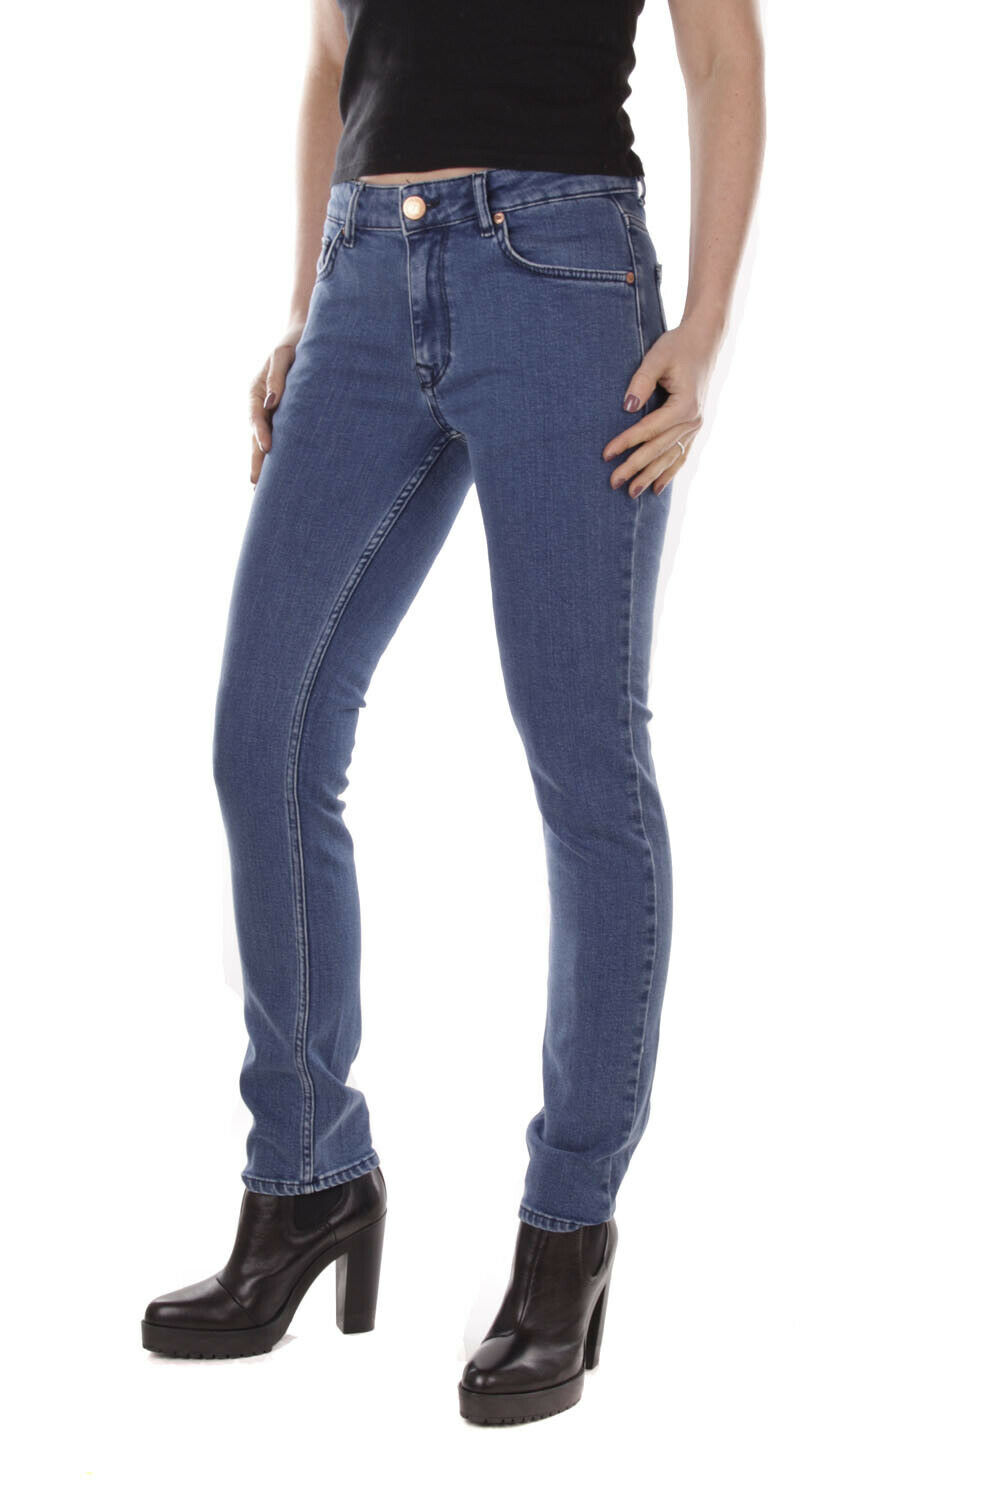 DMM DMM DMM Collection donna pantalone jeans skinny c87ead